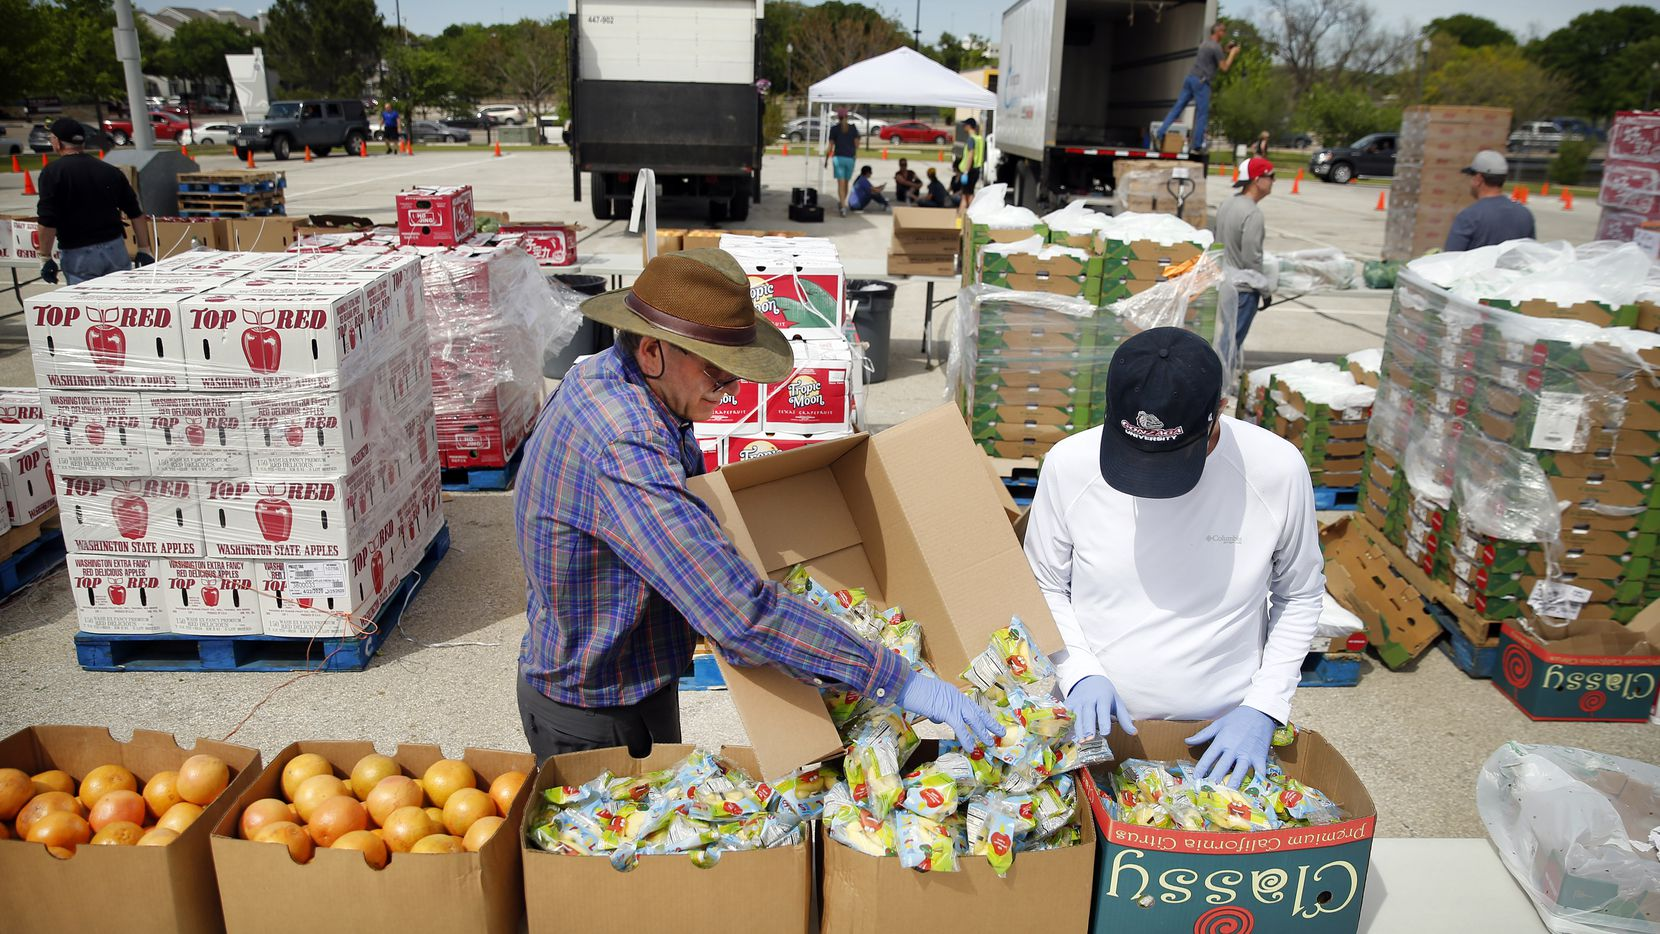 El North Texas Food Bank reanudará sus distribuciones en Dallas y sus alrededores. El Tarrant Area Food Bank  entregará despensas a gran escala esta semana en Arlington en Globe Life Field.